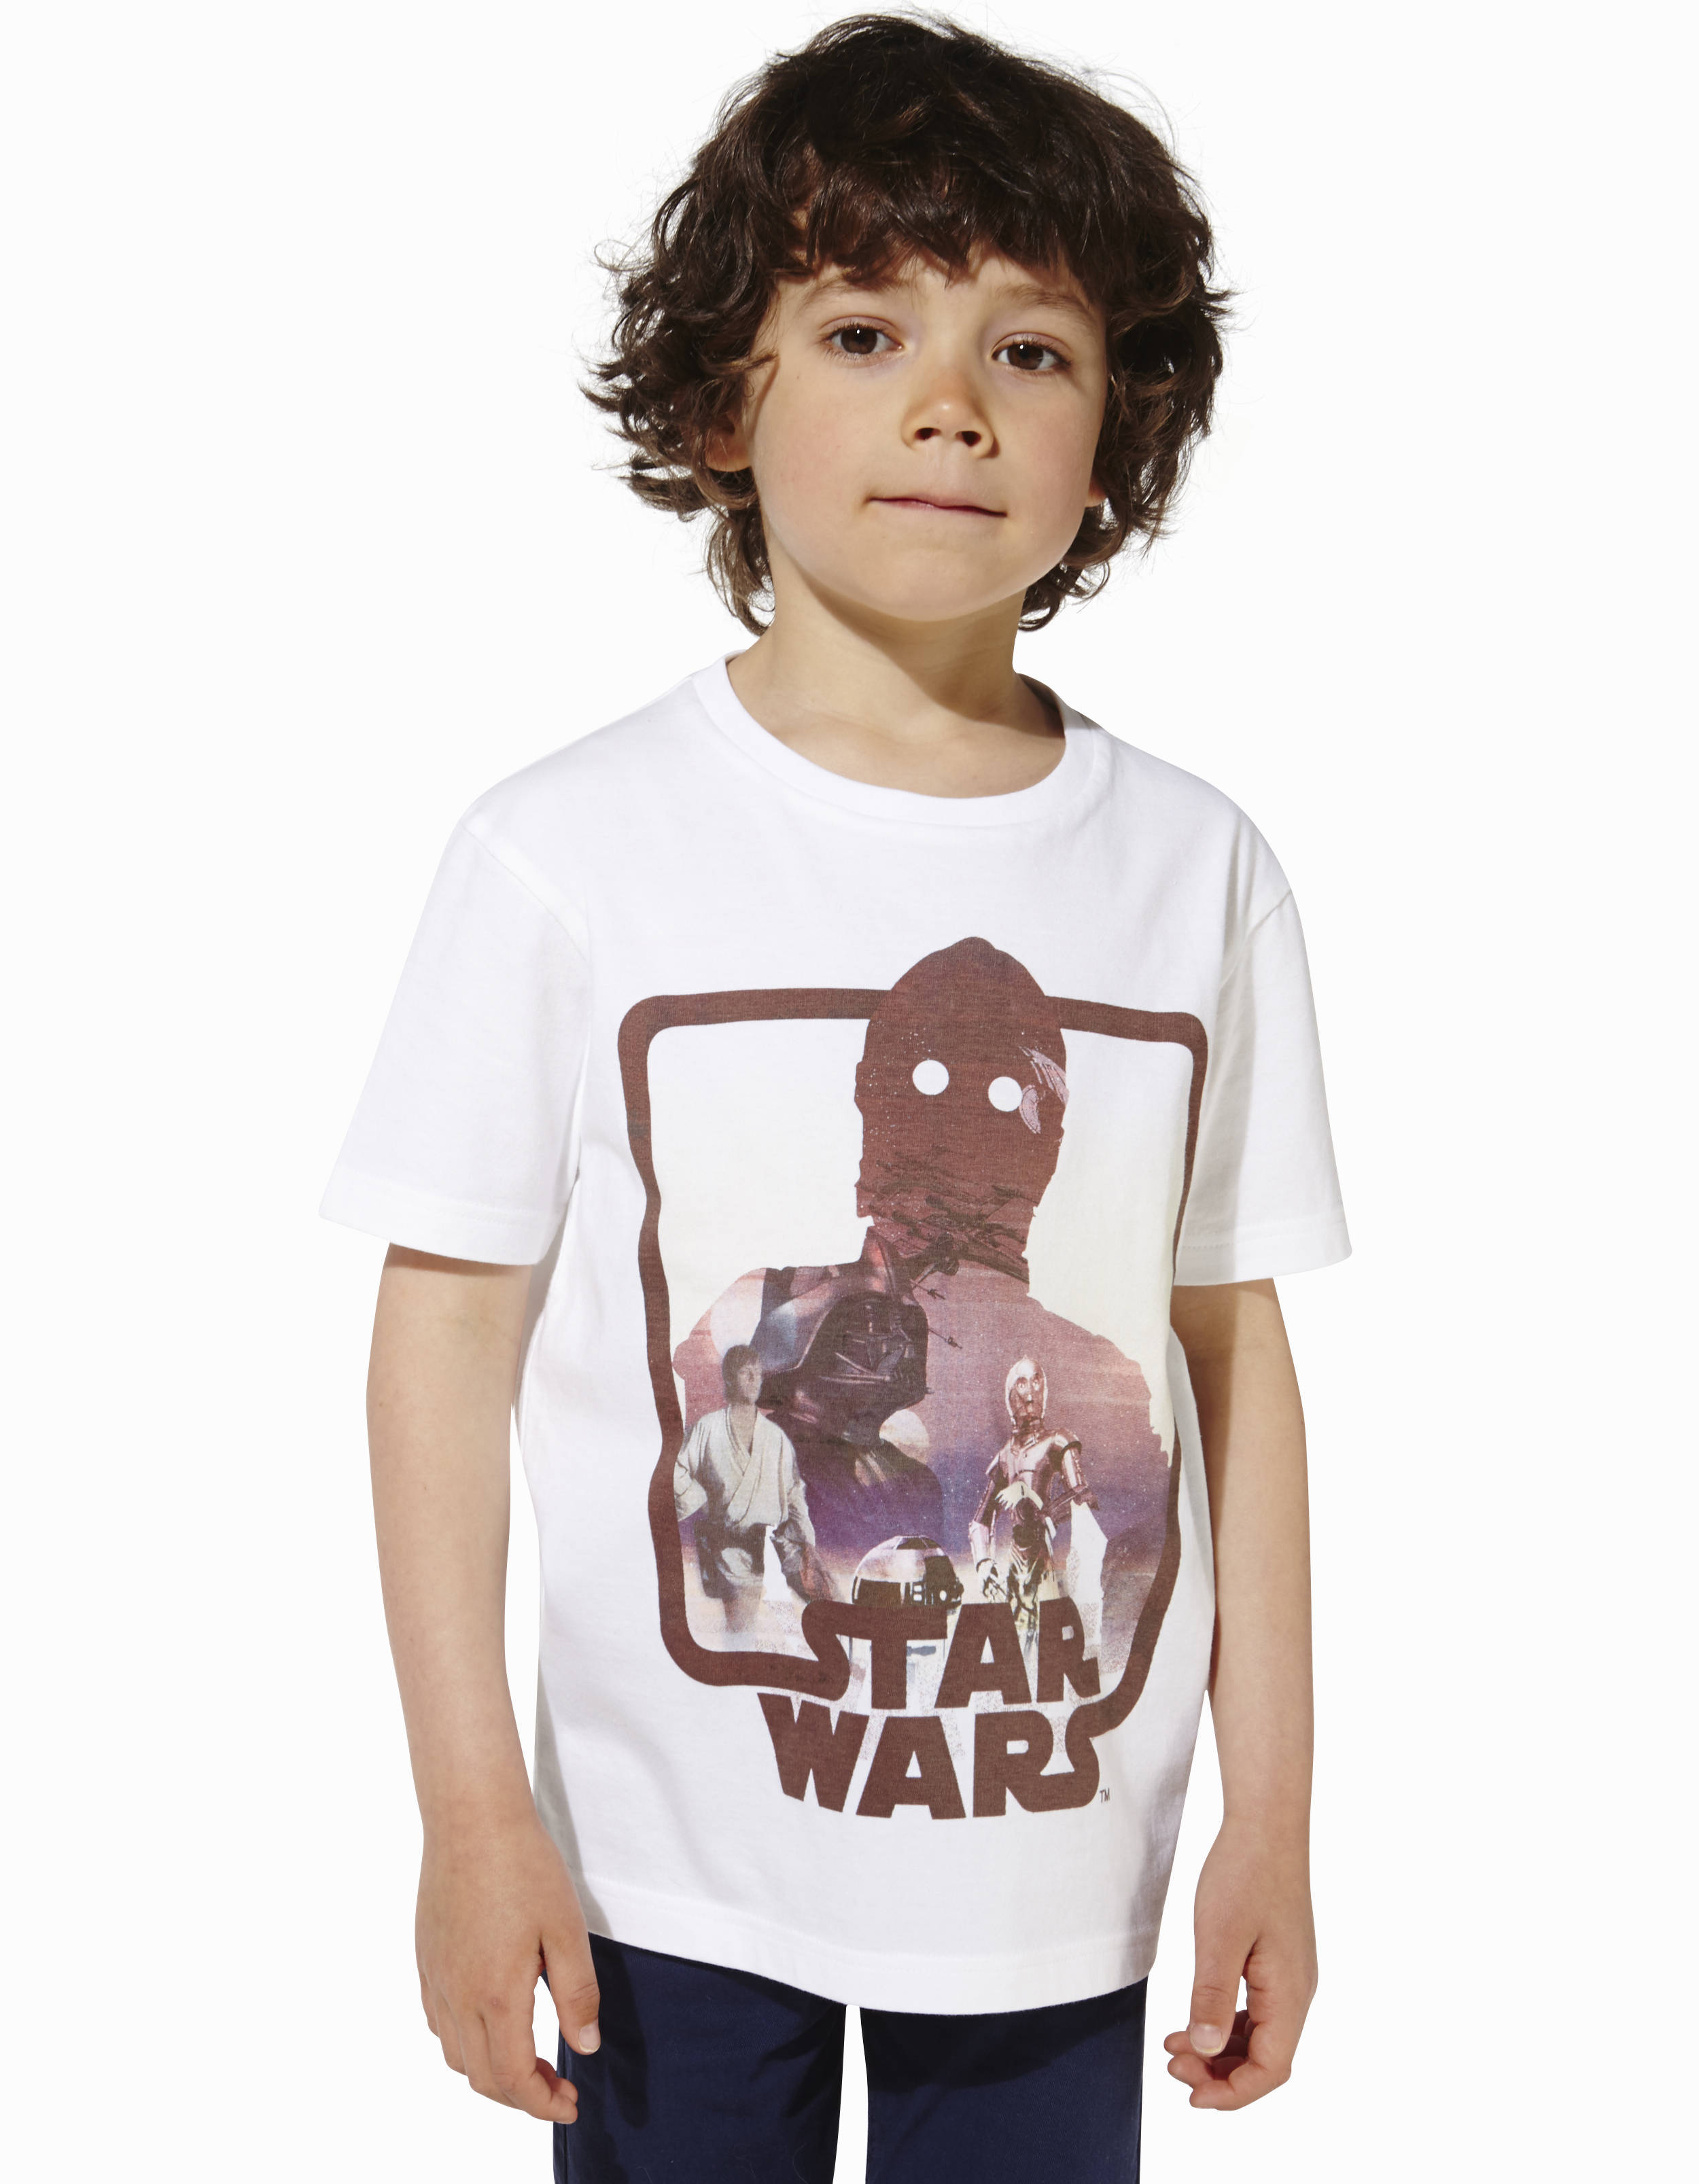 t shirt enfant star wars 100 coton lberobot2 celio france. Black Bedroom Furniture Sets. Home Design Ideas